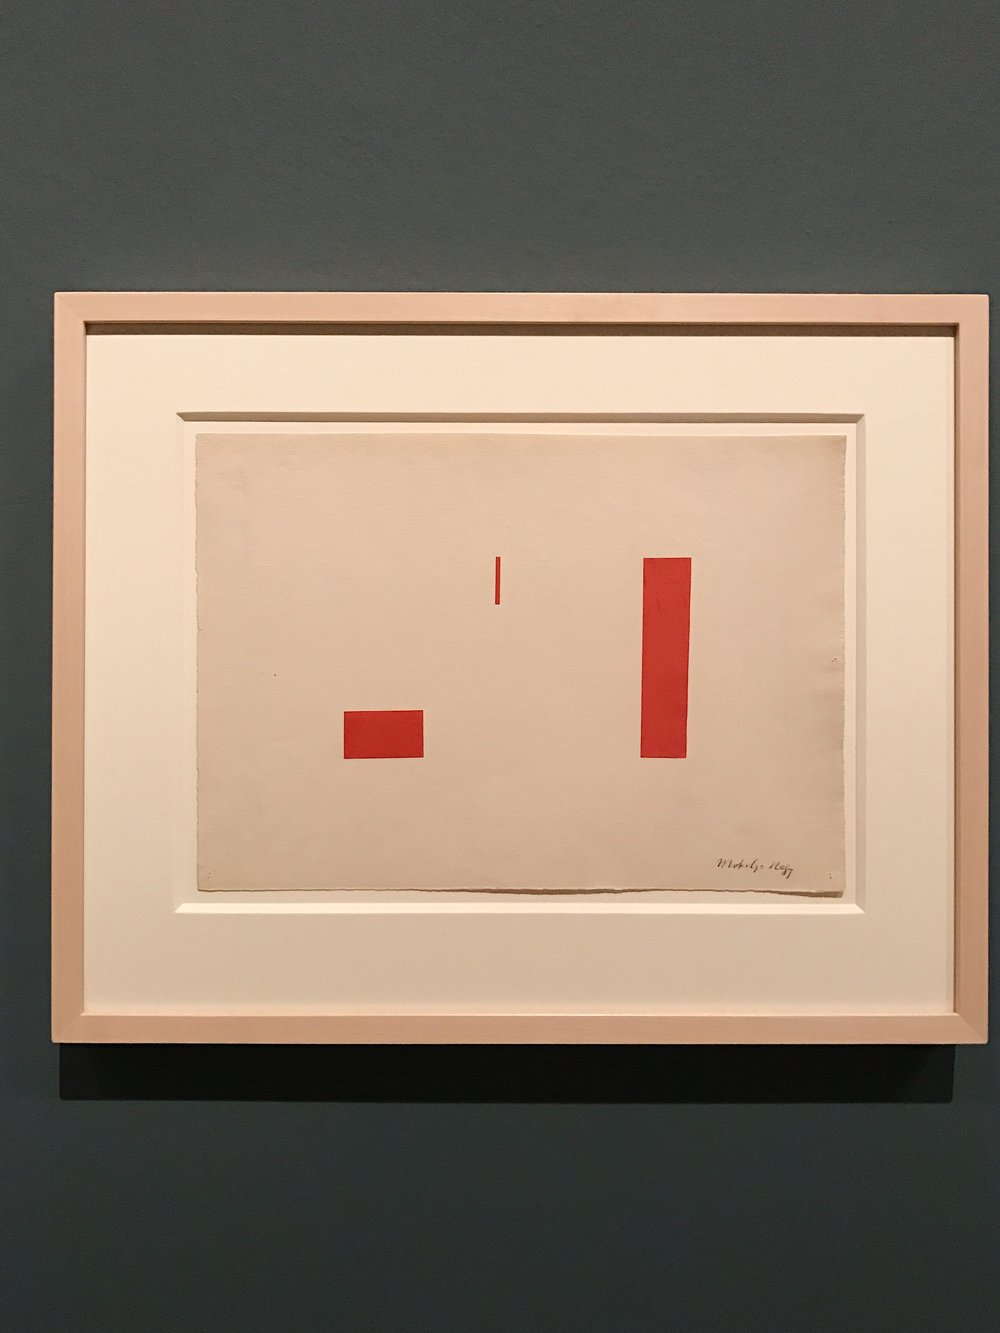 László Moholy-Nagy ,  Unknown title,  1920–21, gouache, collage, and graphite on paper